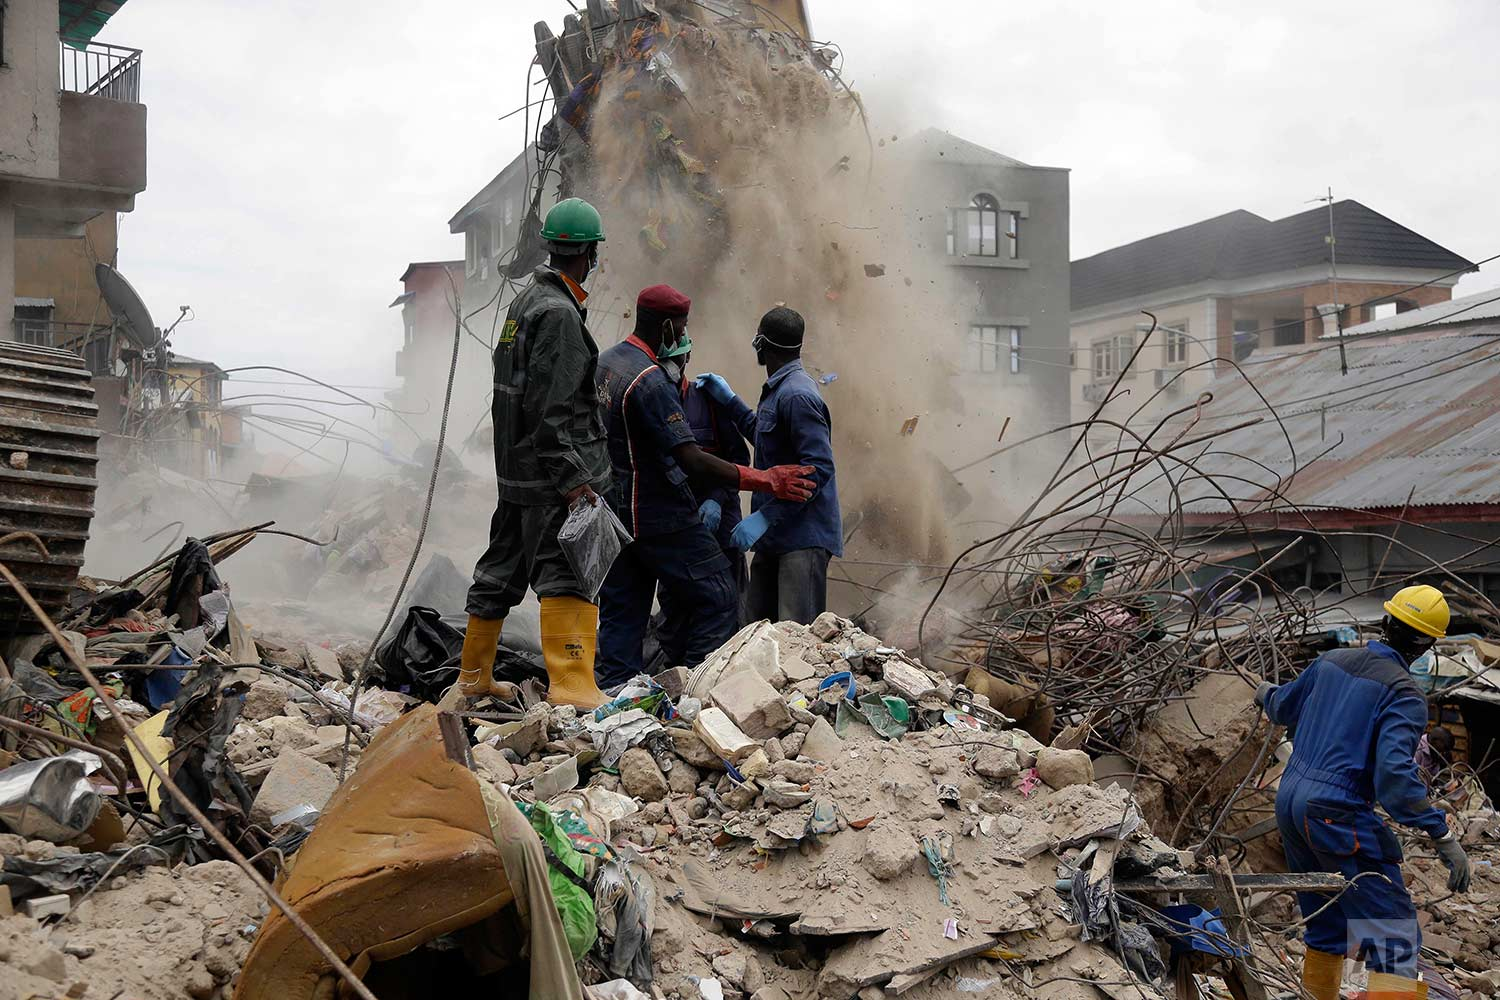 Rescue workers looking for survivors watch as debris falls from a collapsed building in a densely populated neighborhood in Lagos, Nigeria, Wednesday, July 26, 2017. (AP Photo/Sunday Alamba)